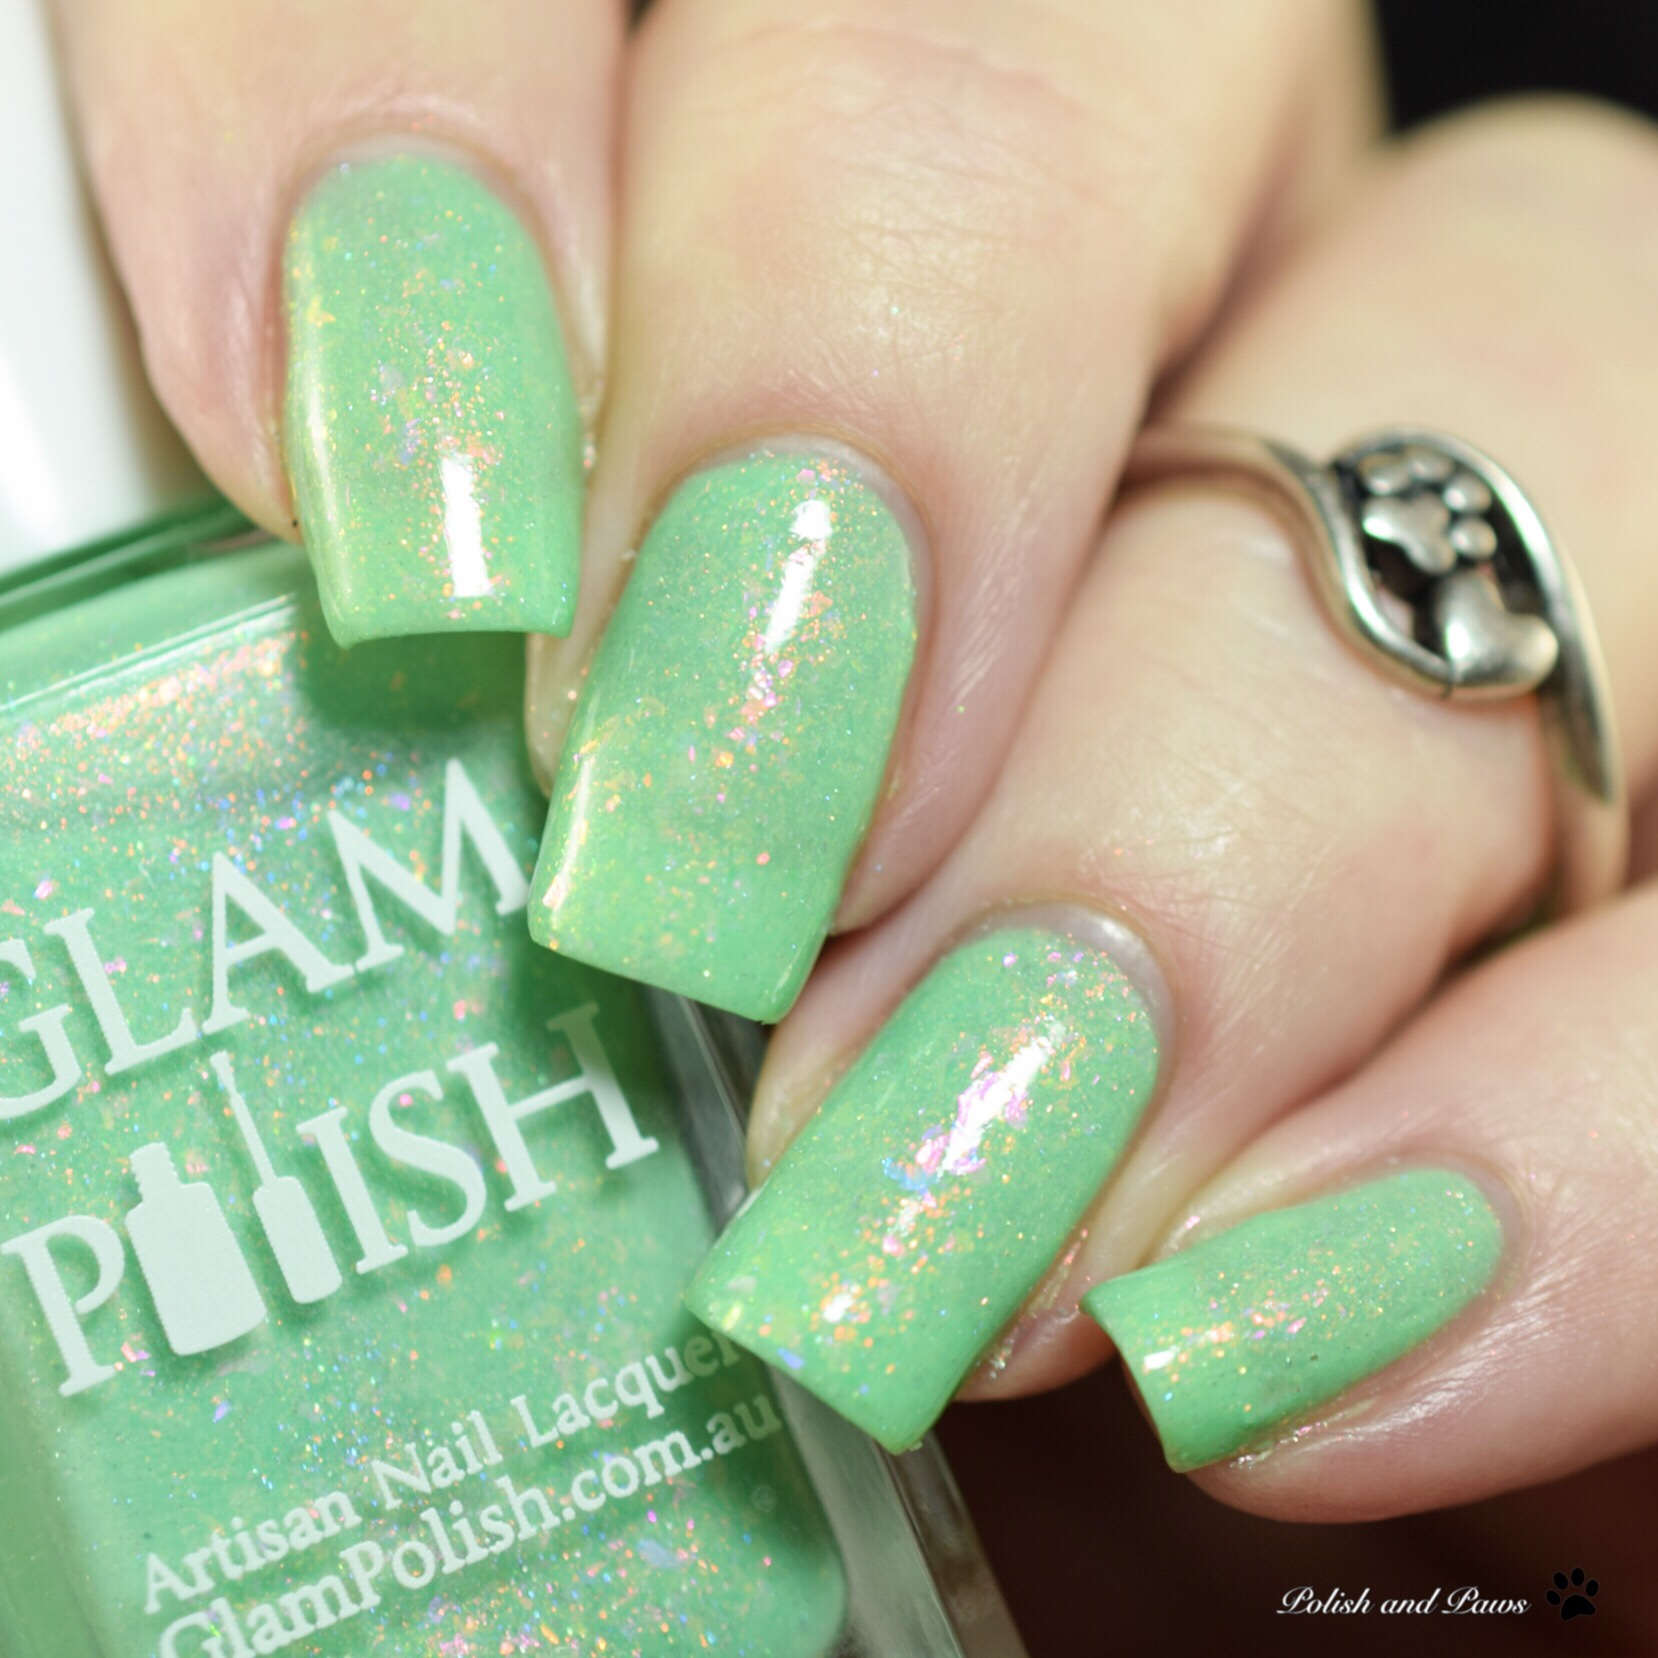 Glam Polish Nauti-Cool